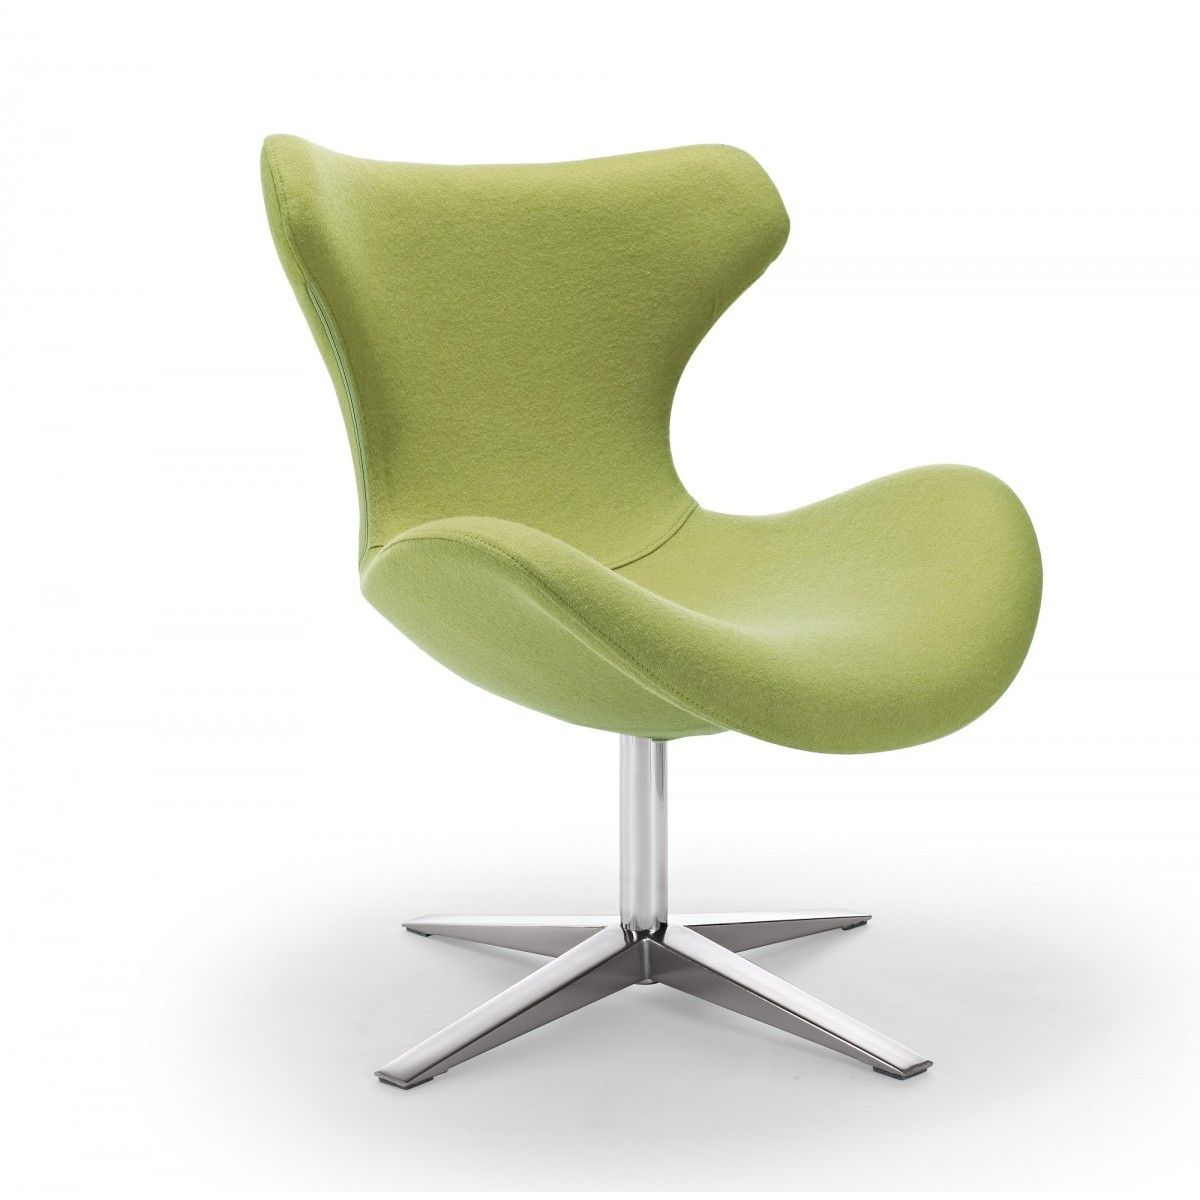 statuette of cool lime green accent chair | furniture | pinterest